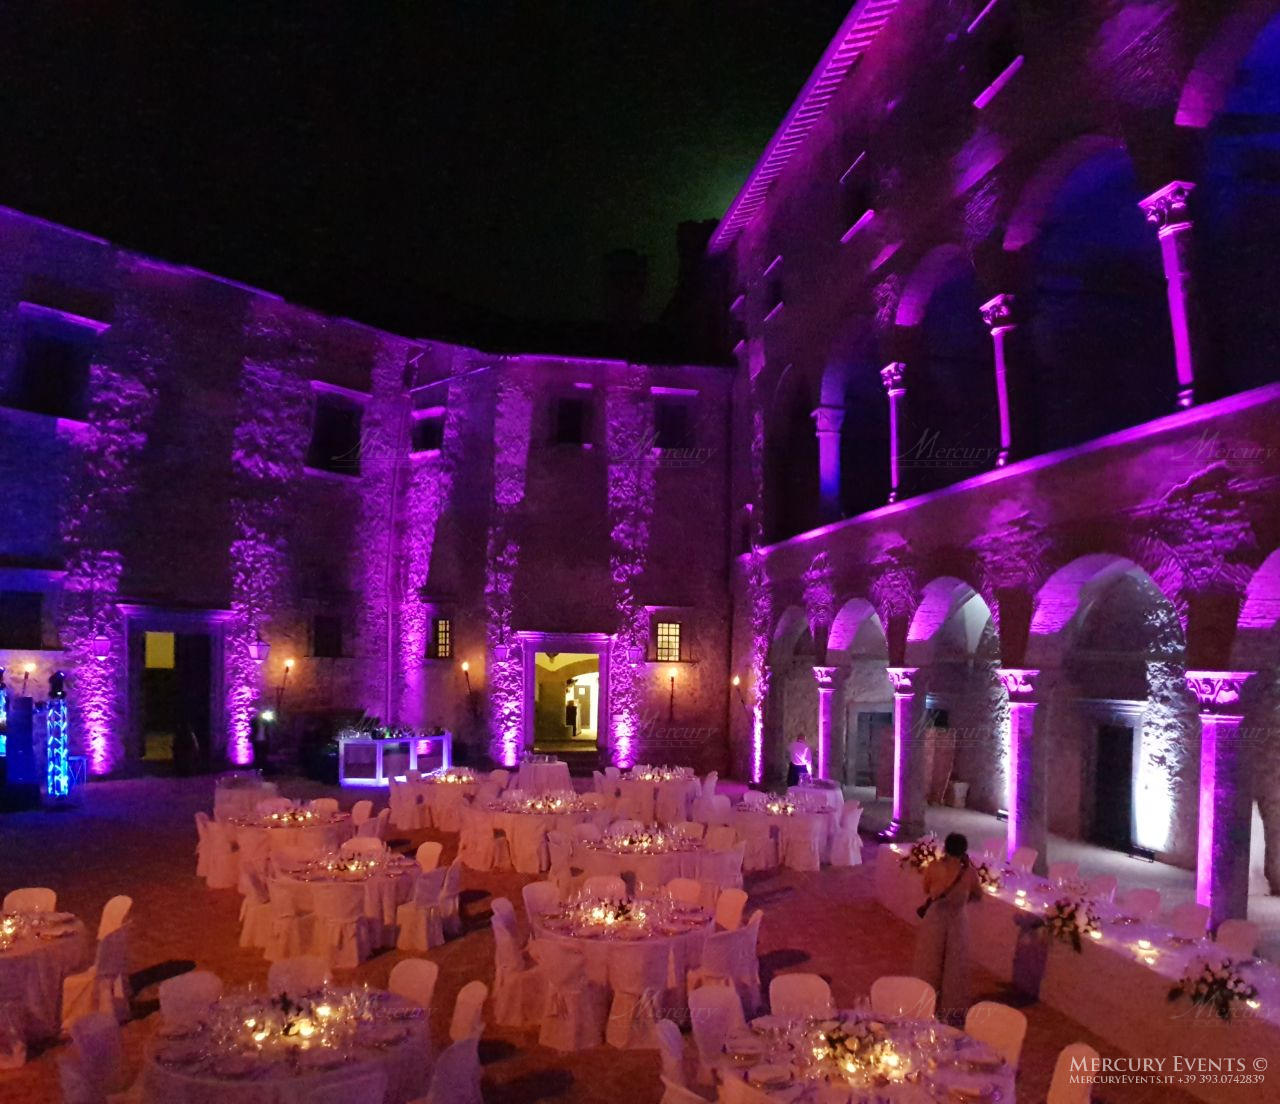 Wedding - Castello Odelschalchi di Bracciano - Mercury Events 9